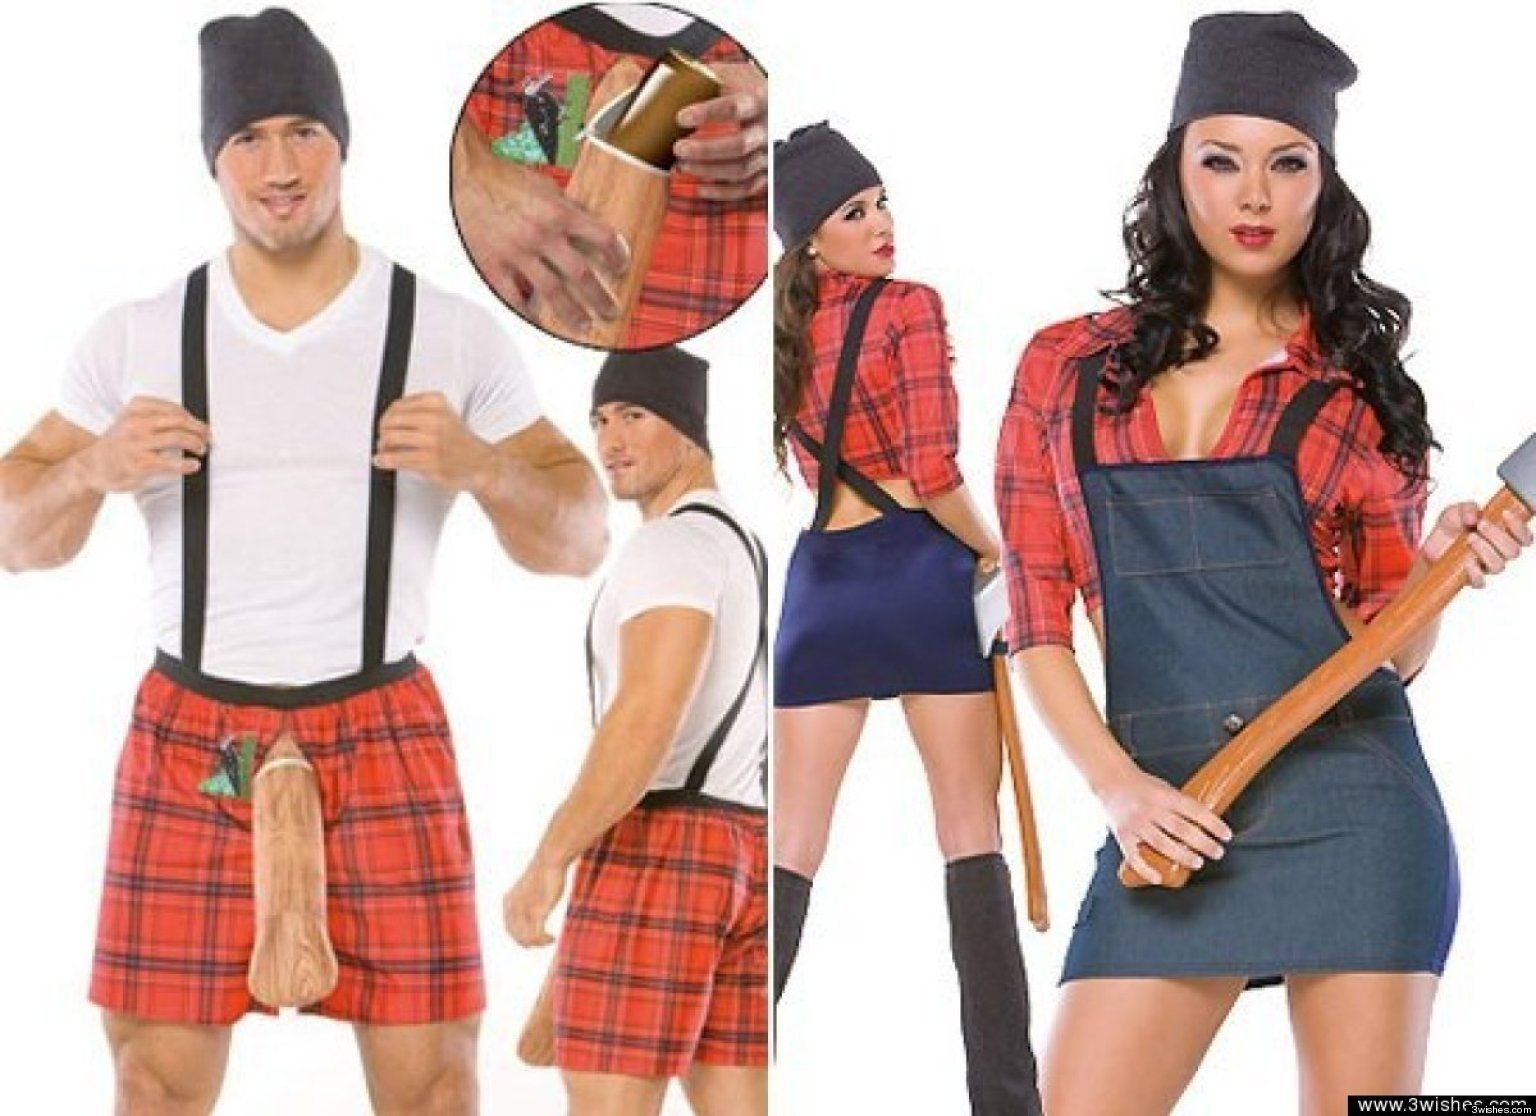 10 Amazing Great Costume Ideas For Couples look 5 extremely awkward couples costumes costumes couple 12 2020